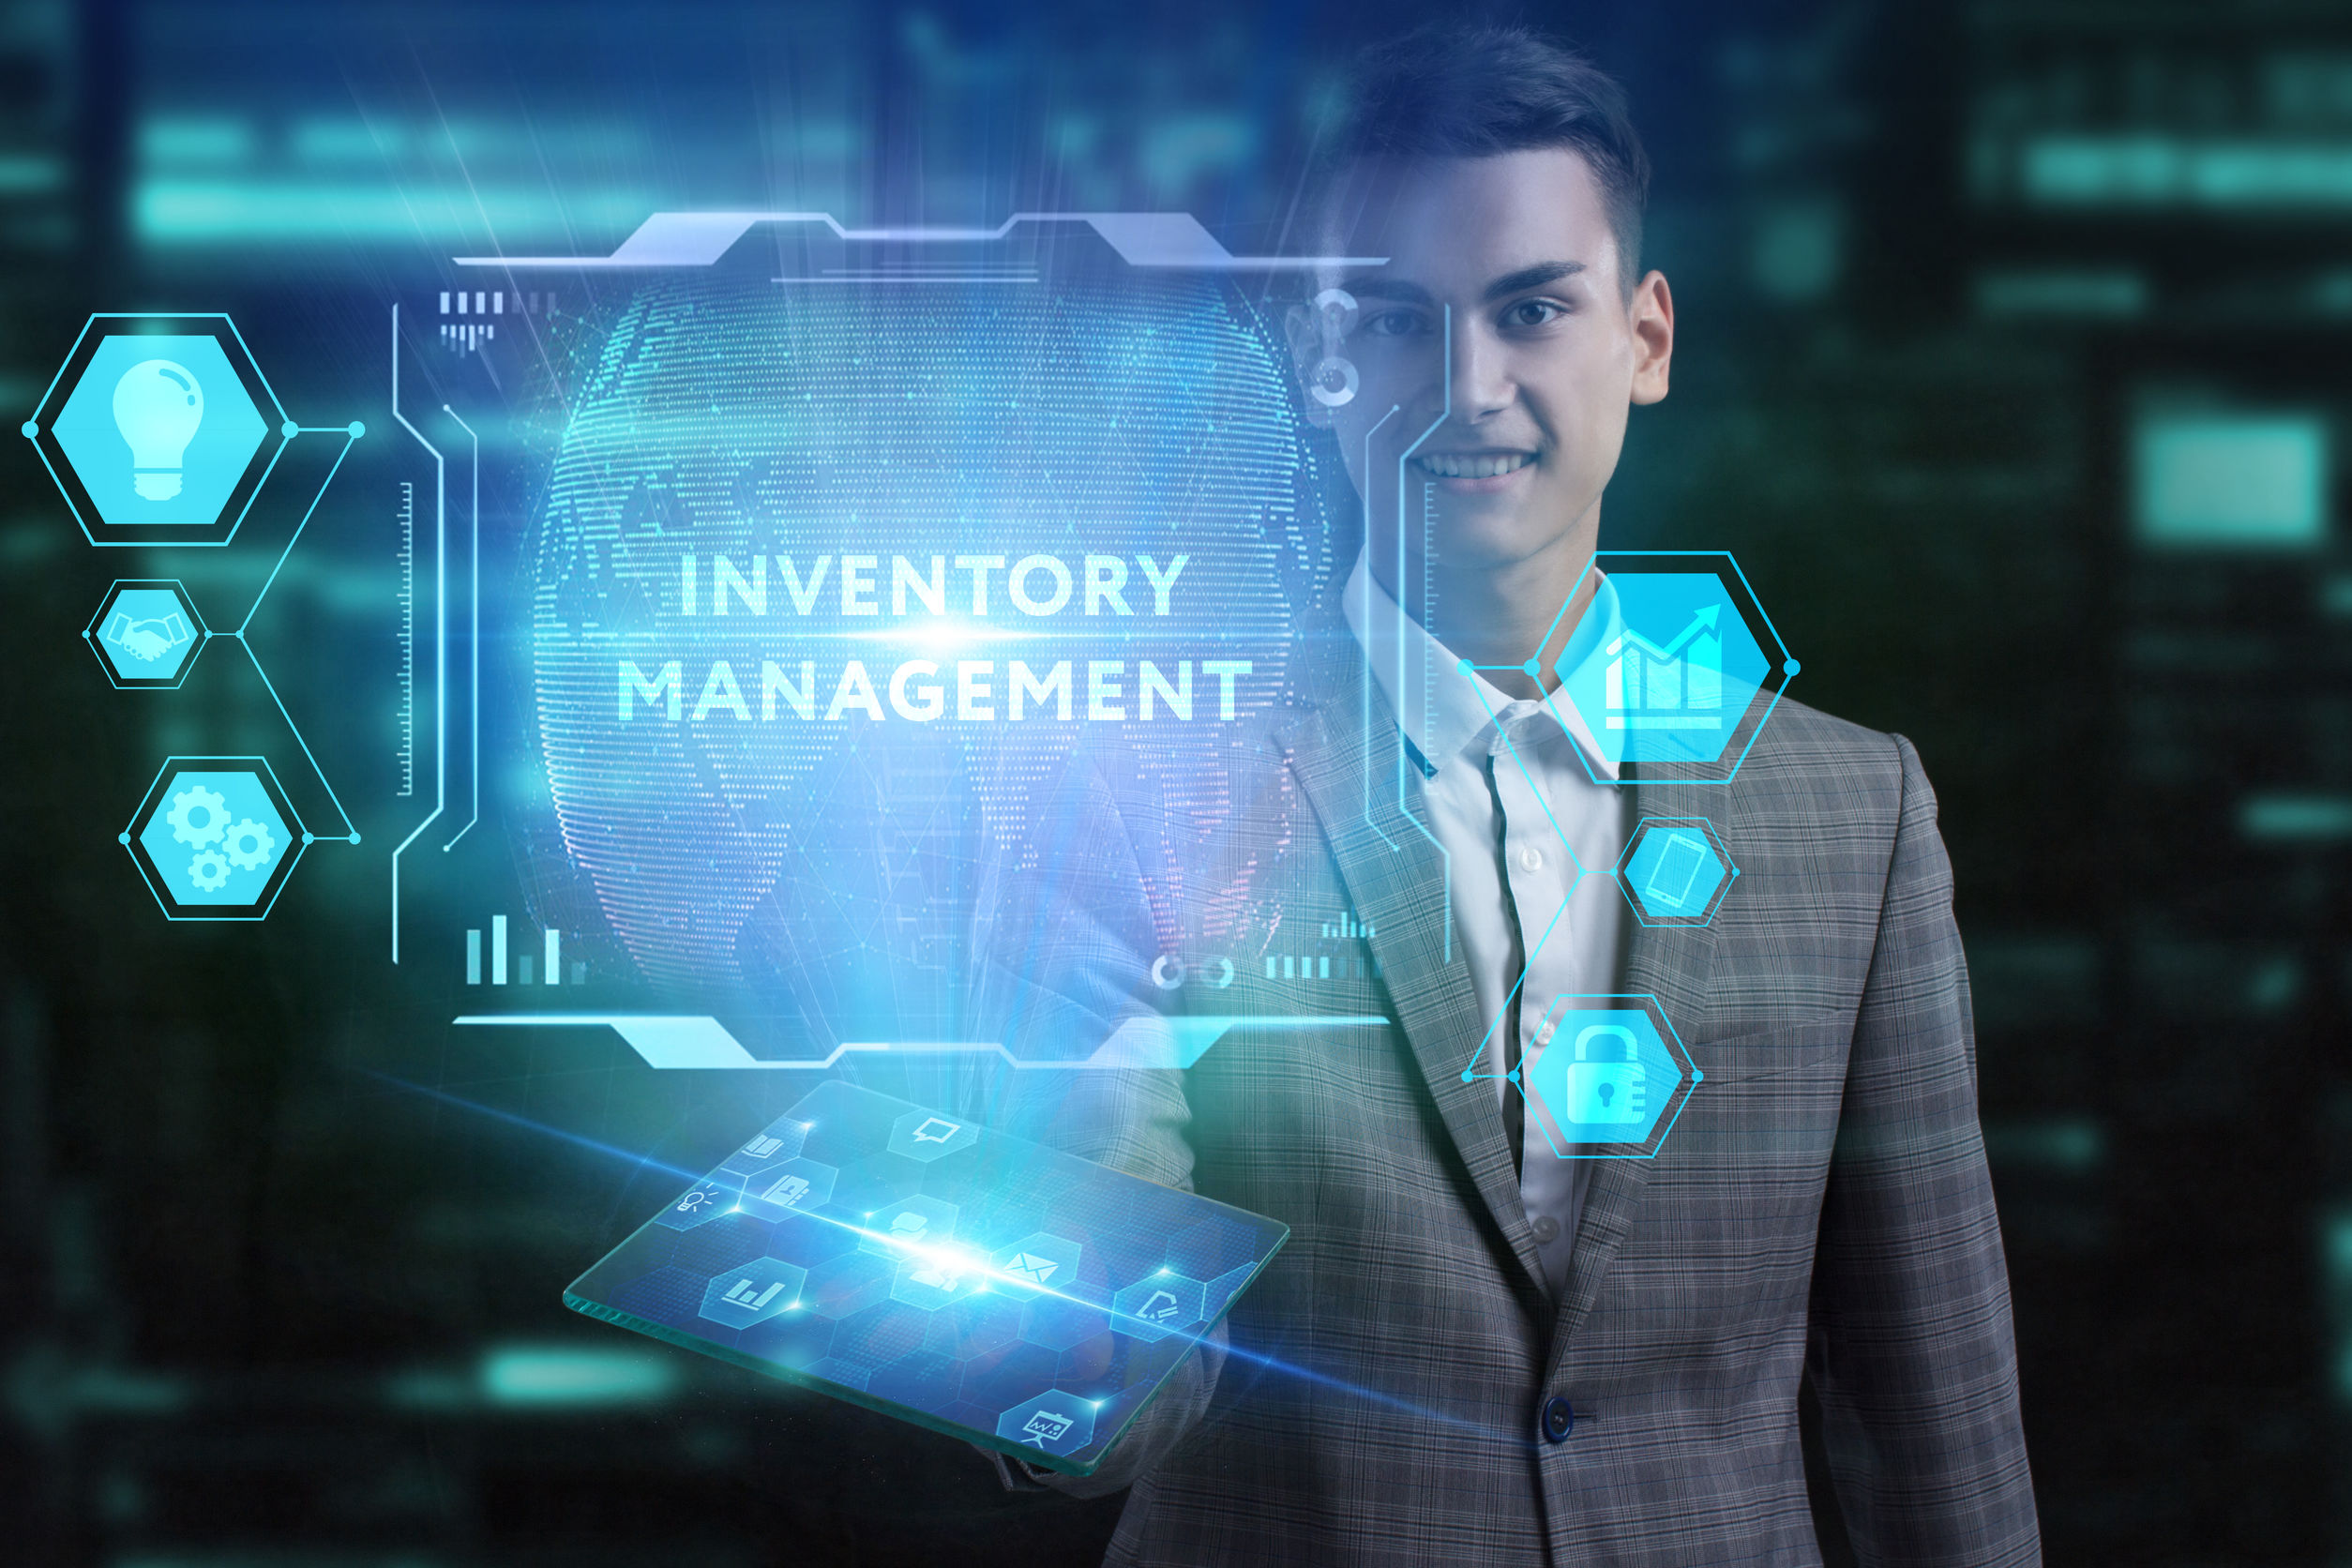 7 Tips to Streamline Inventory Management for Operational Resiliency